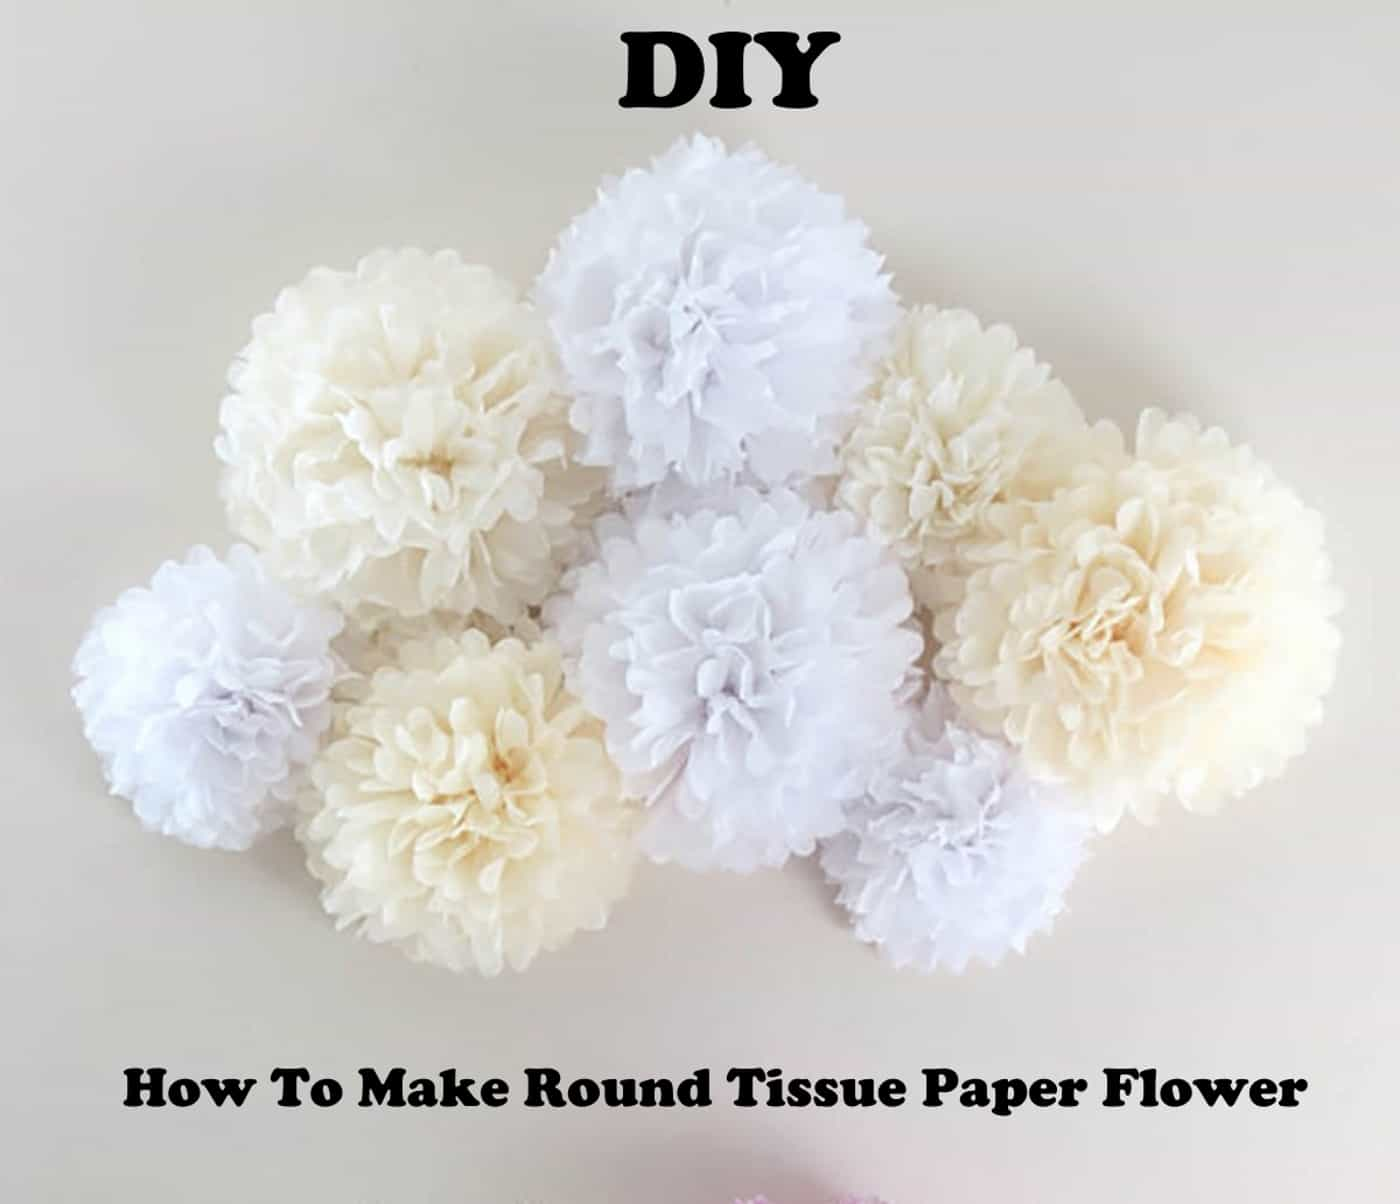 DIY how to make a round tissue paper flower